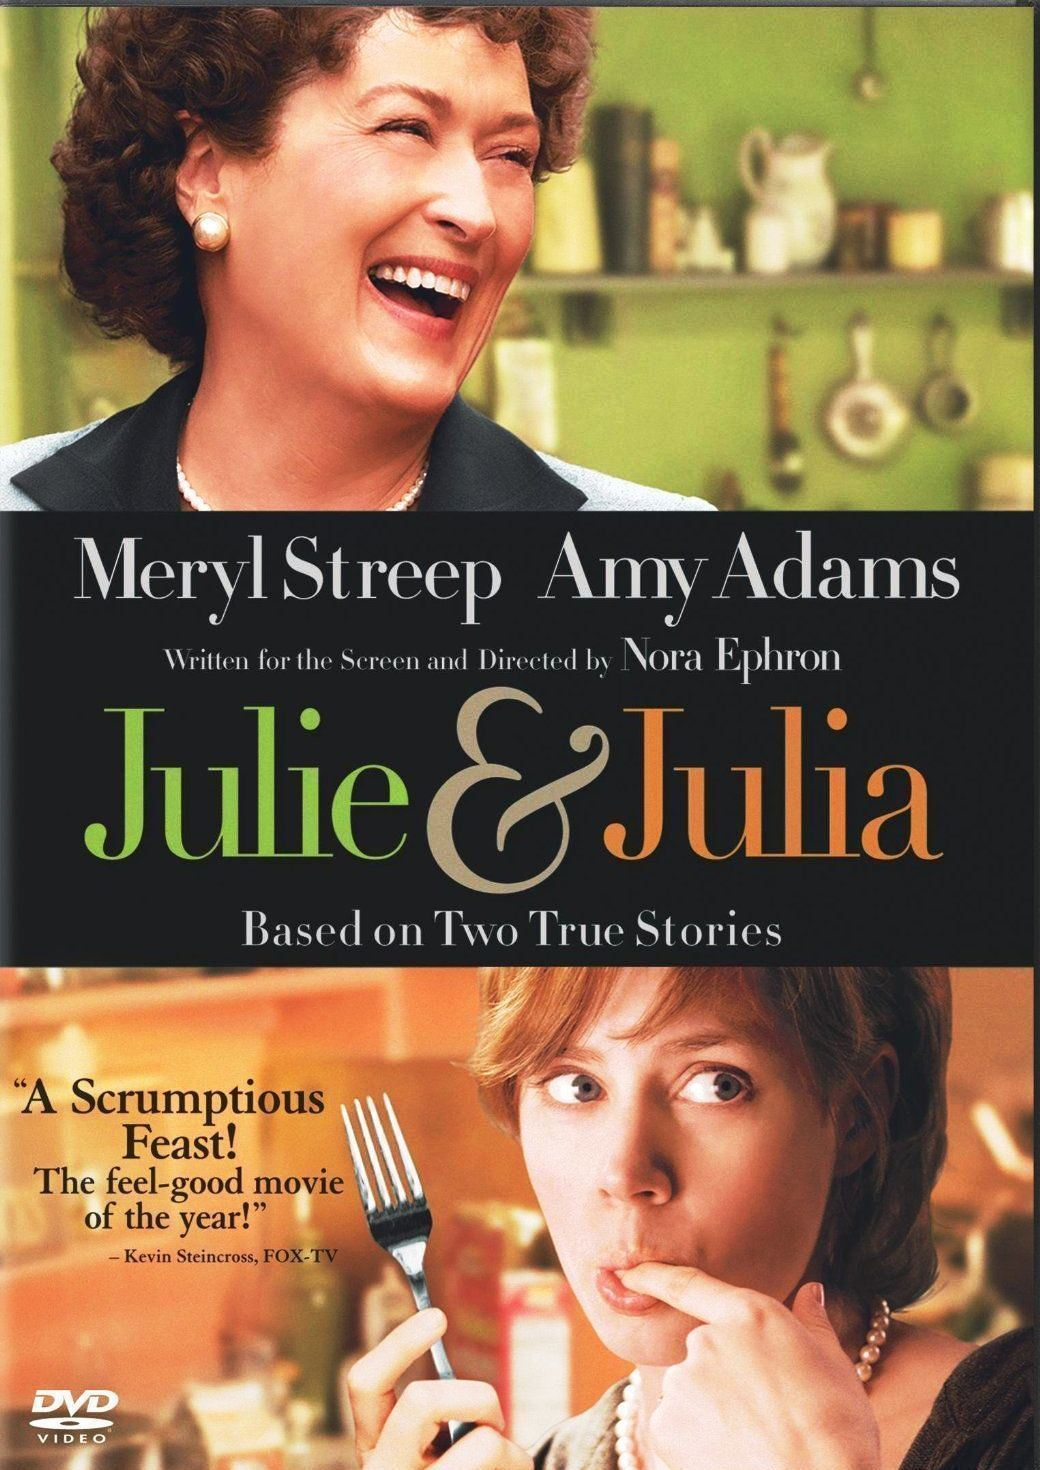 Primary image for DVD Julie & Julia WIDESCREEN: Meryl Streep Amy Adams Stanley Tucci Chris Messina